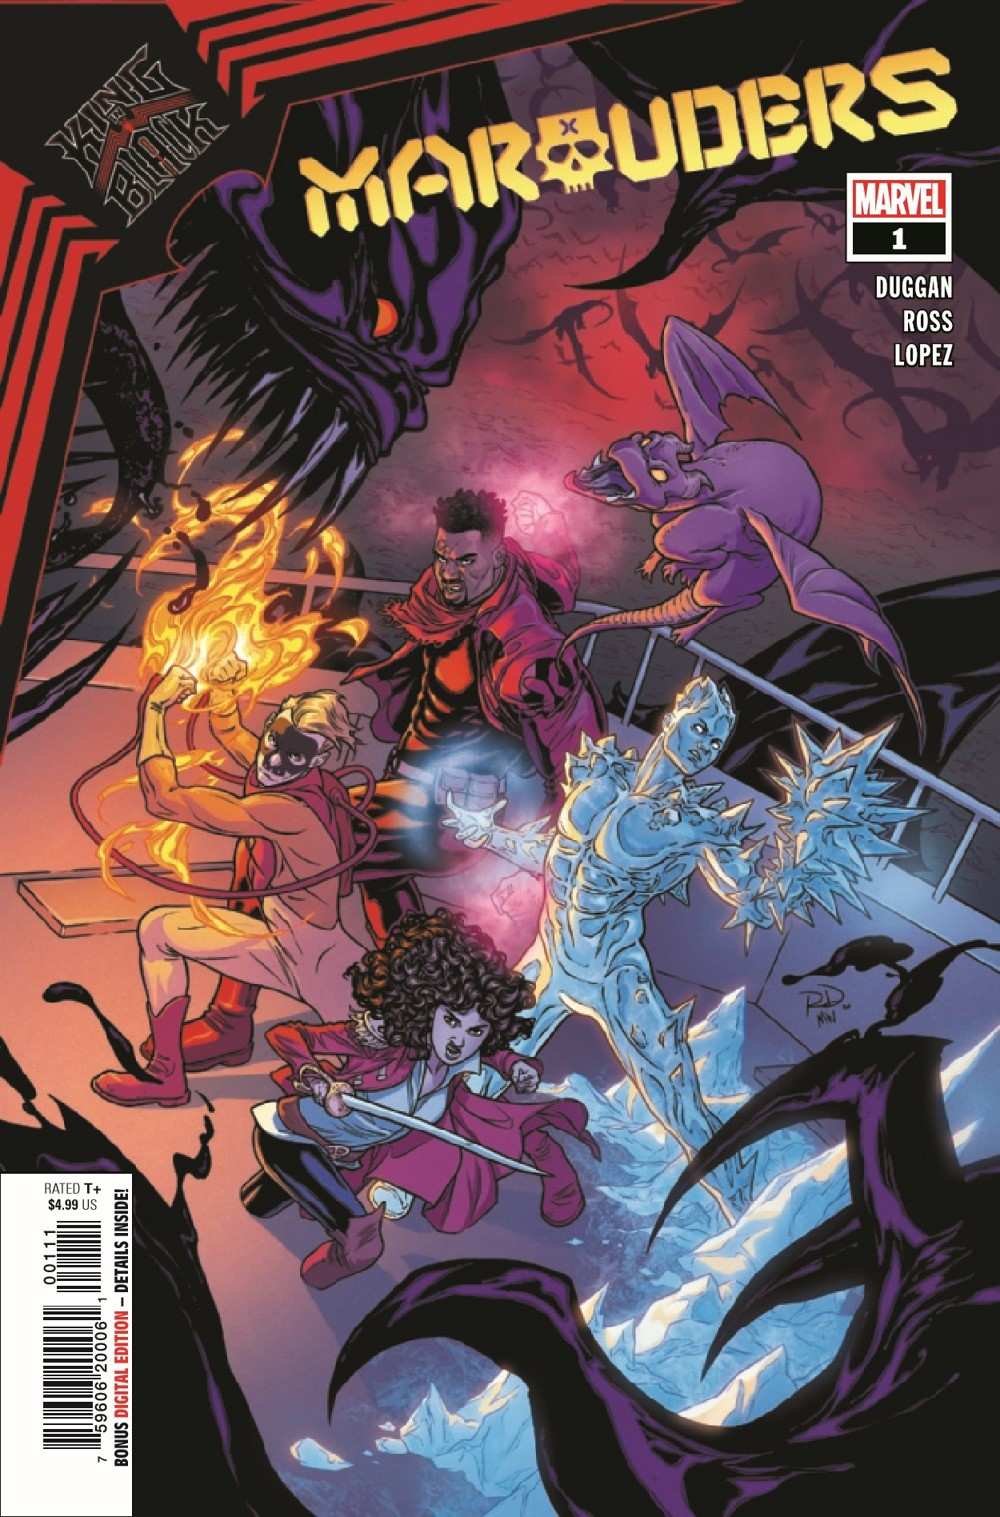 MARAUDERSKIB2021001_Preview-1 ComicList Previews: KING IN BLACK MARAUDERS #1